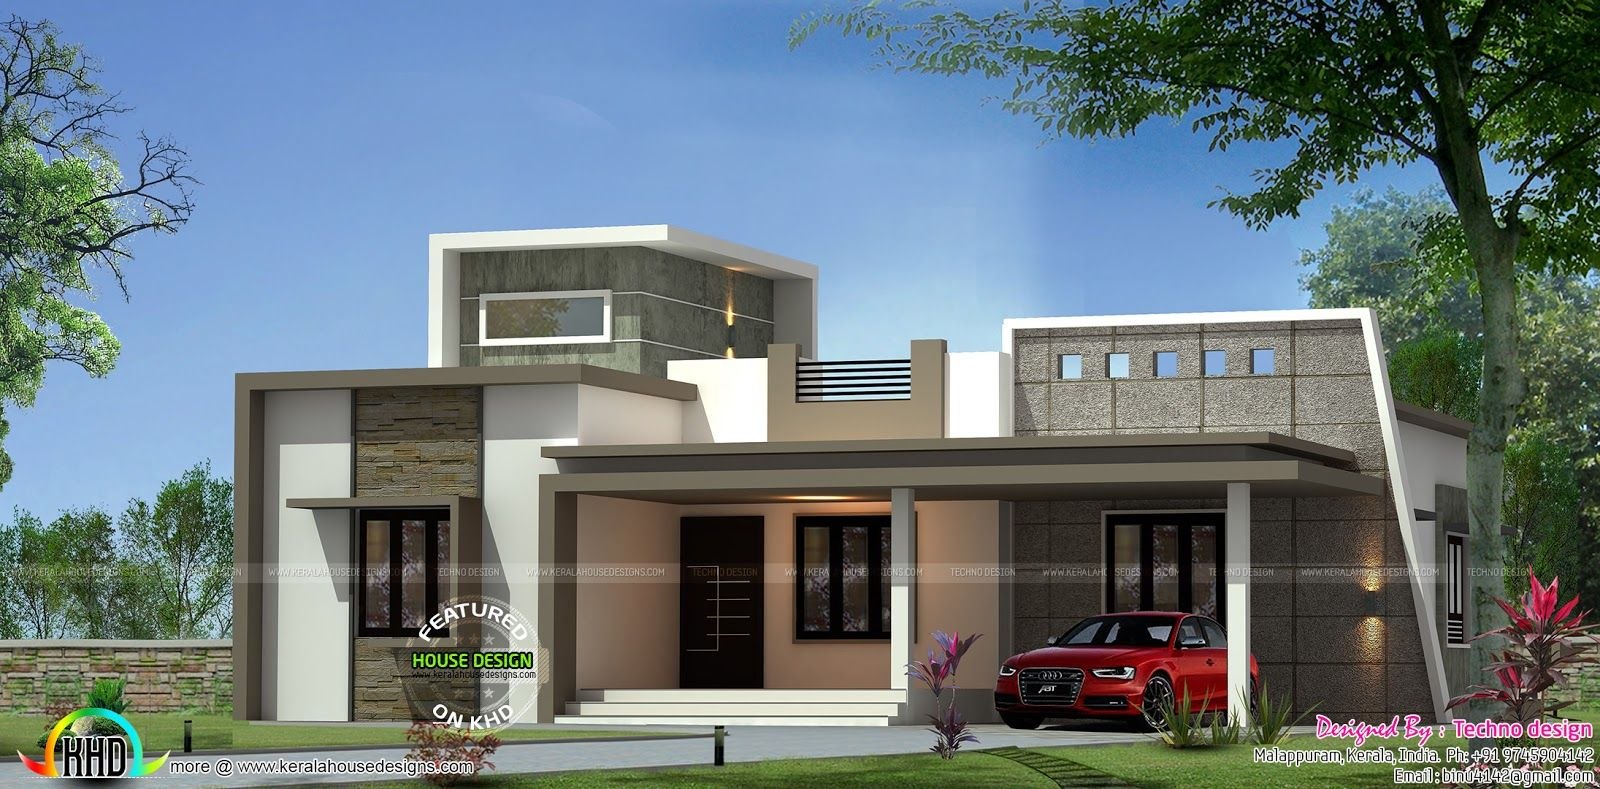 Imagen Relacionada Kerala House Design Single Floor House Design House Front Design